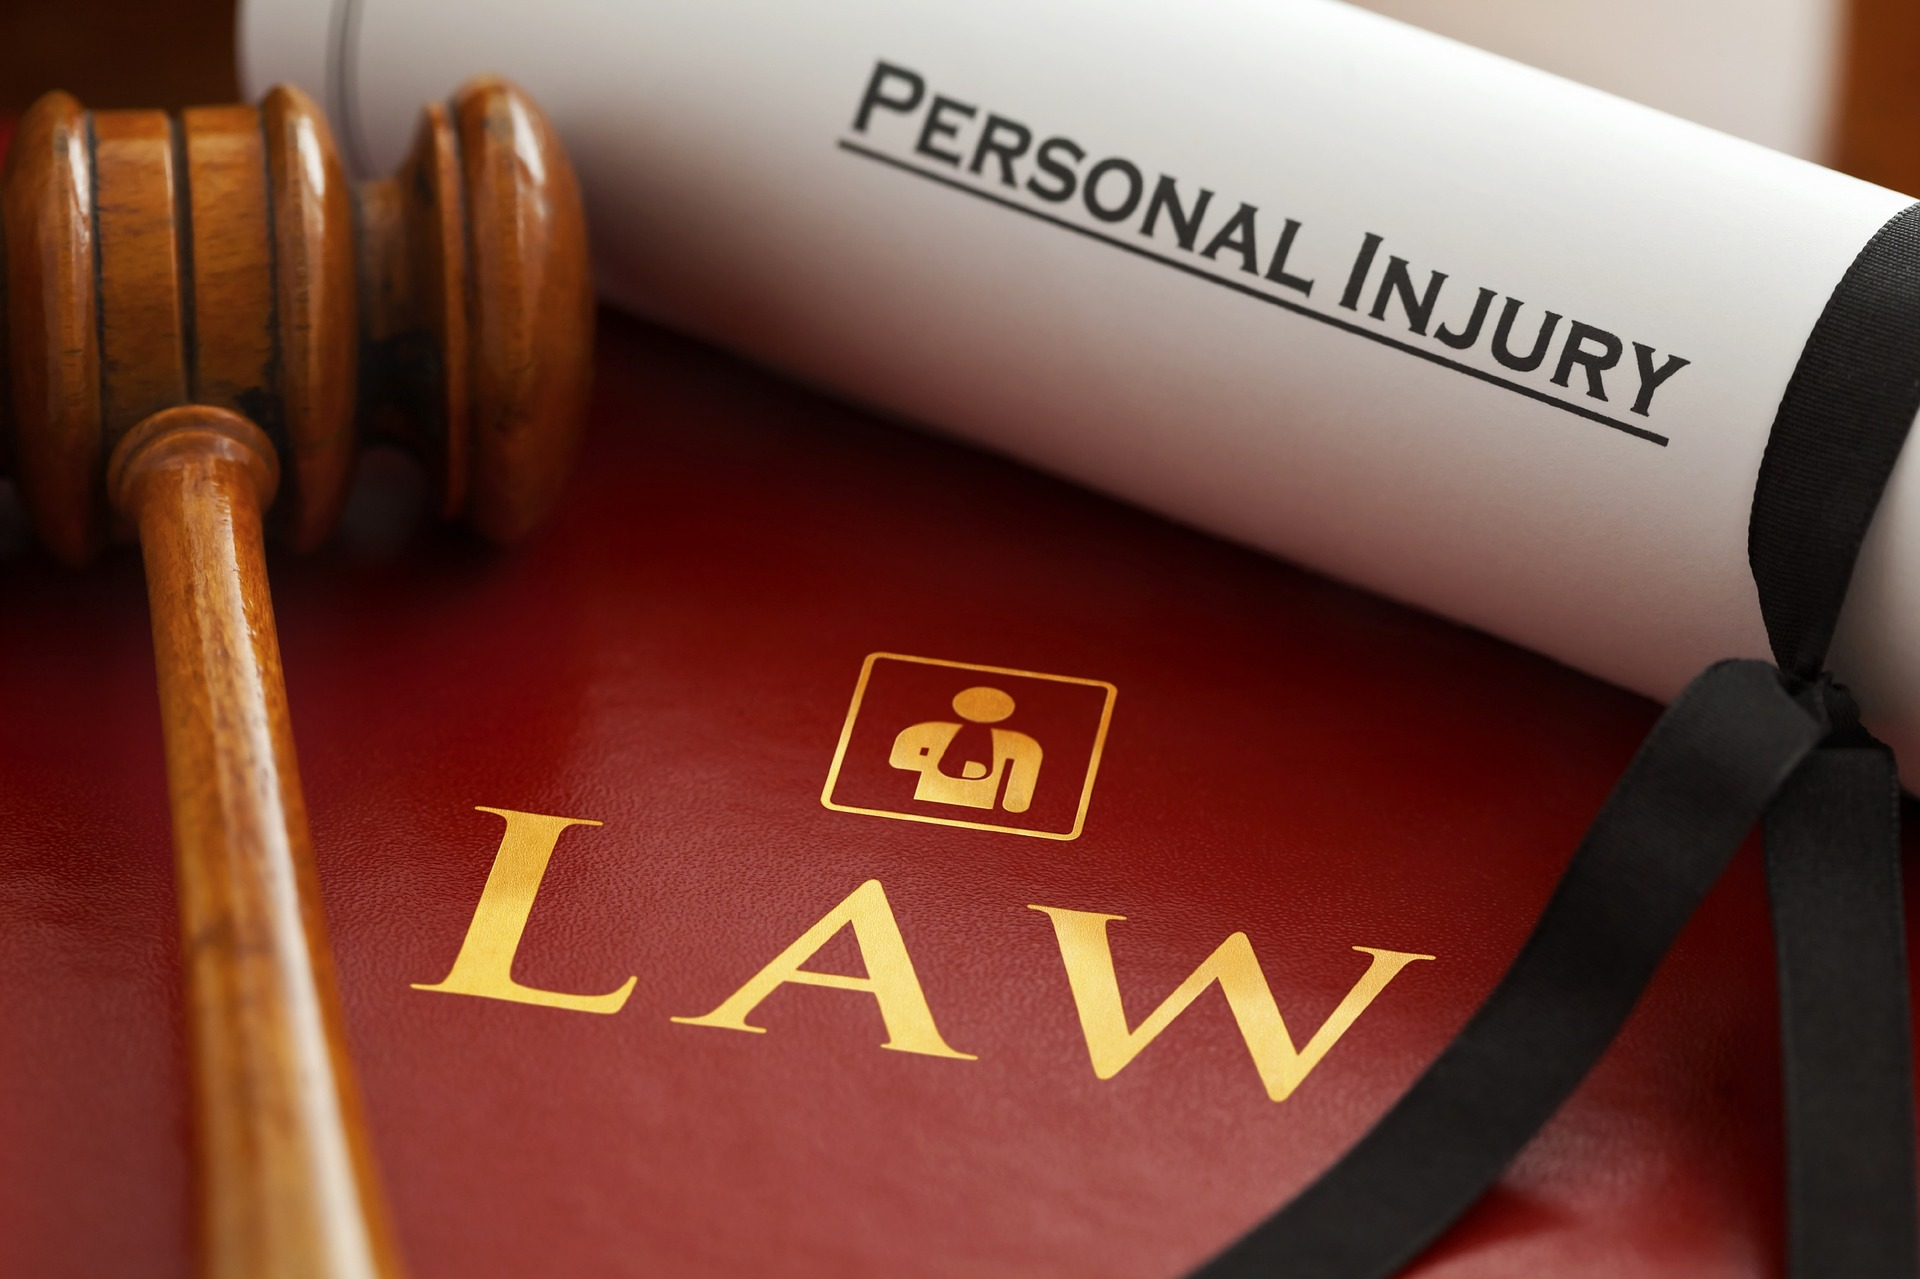 How do I handle a personal injury claim when liability is clear?